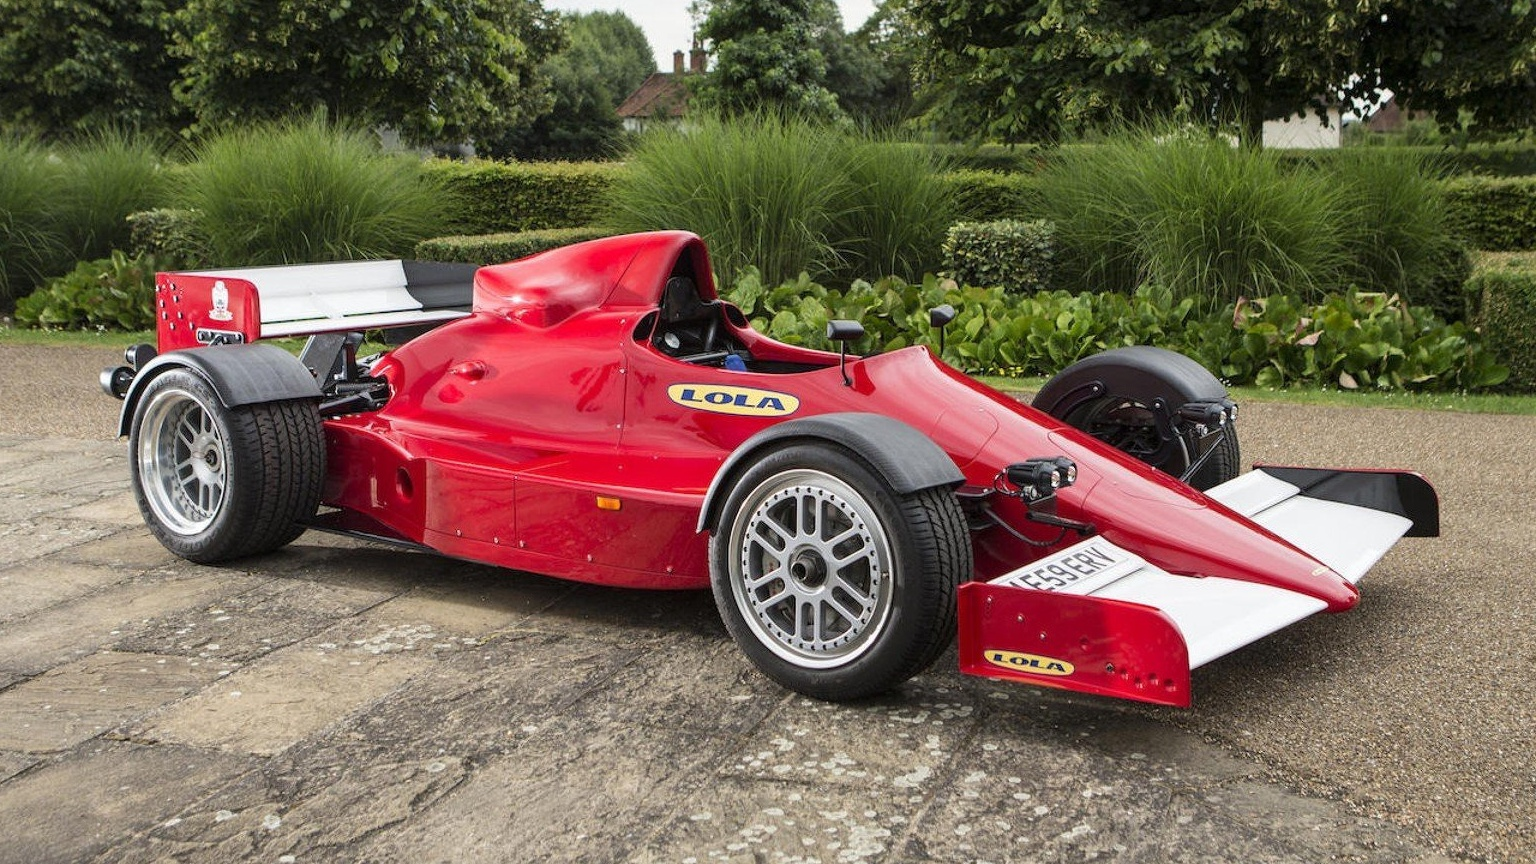 Now You Can Own A Genuine Road Legal F1 Car